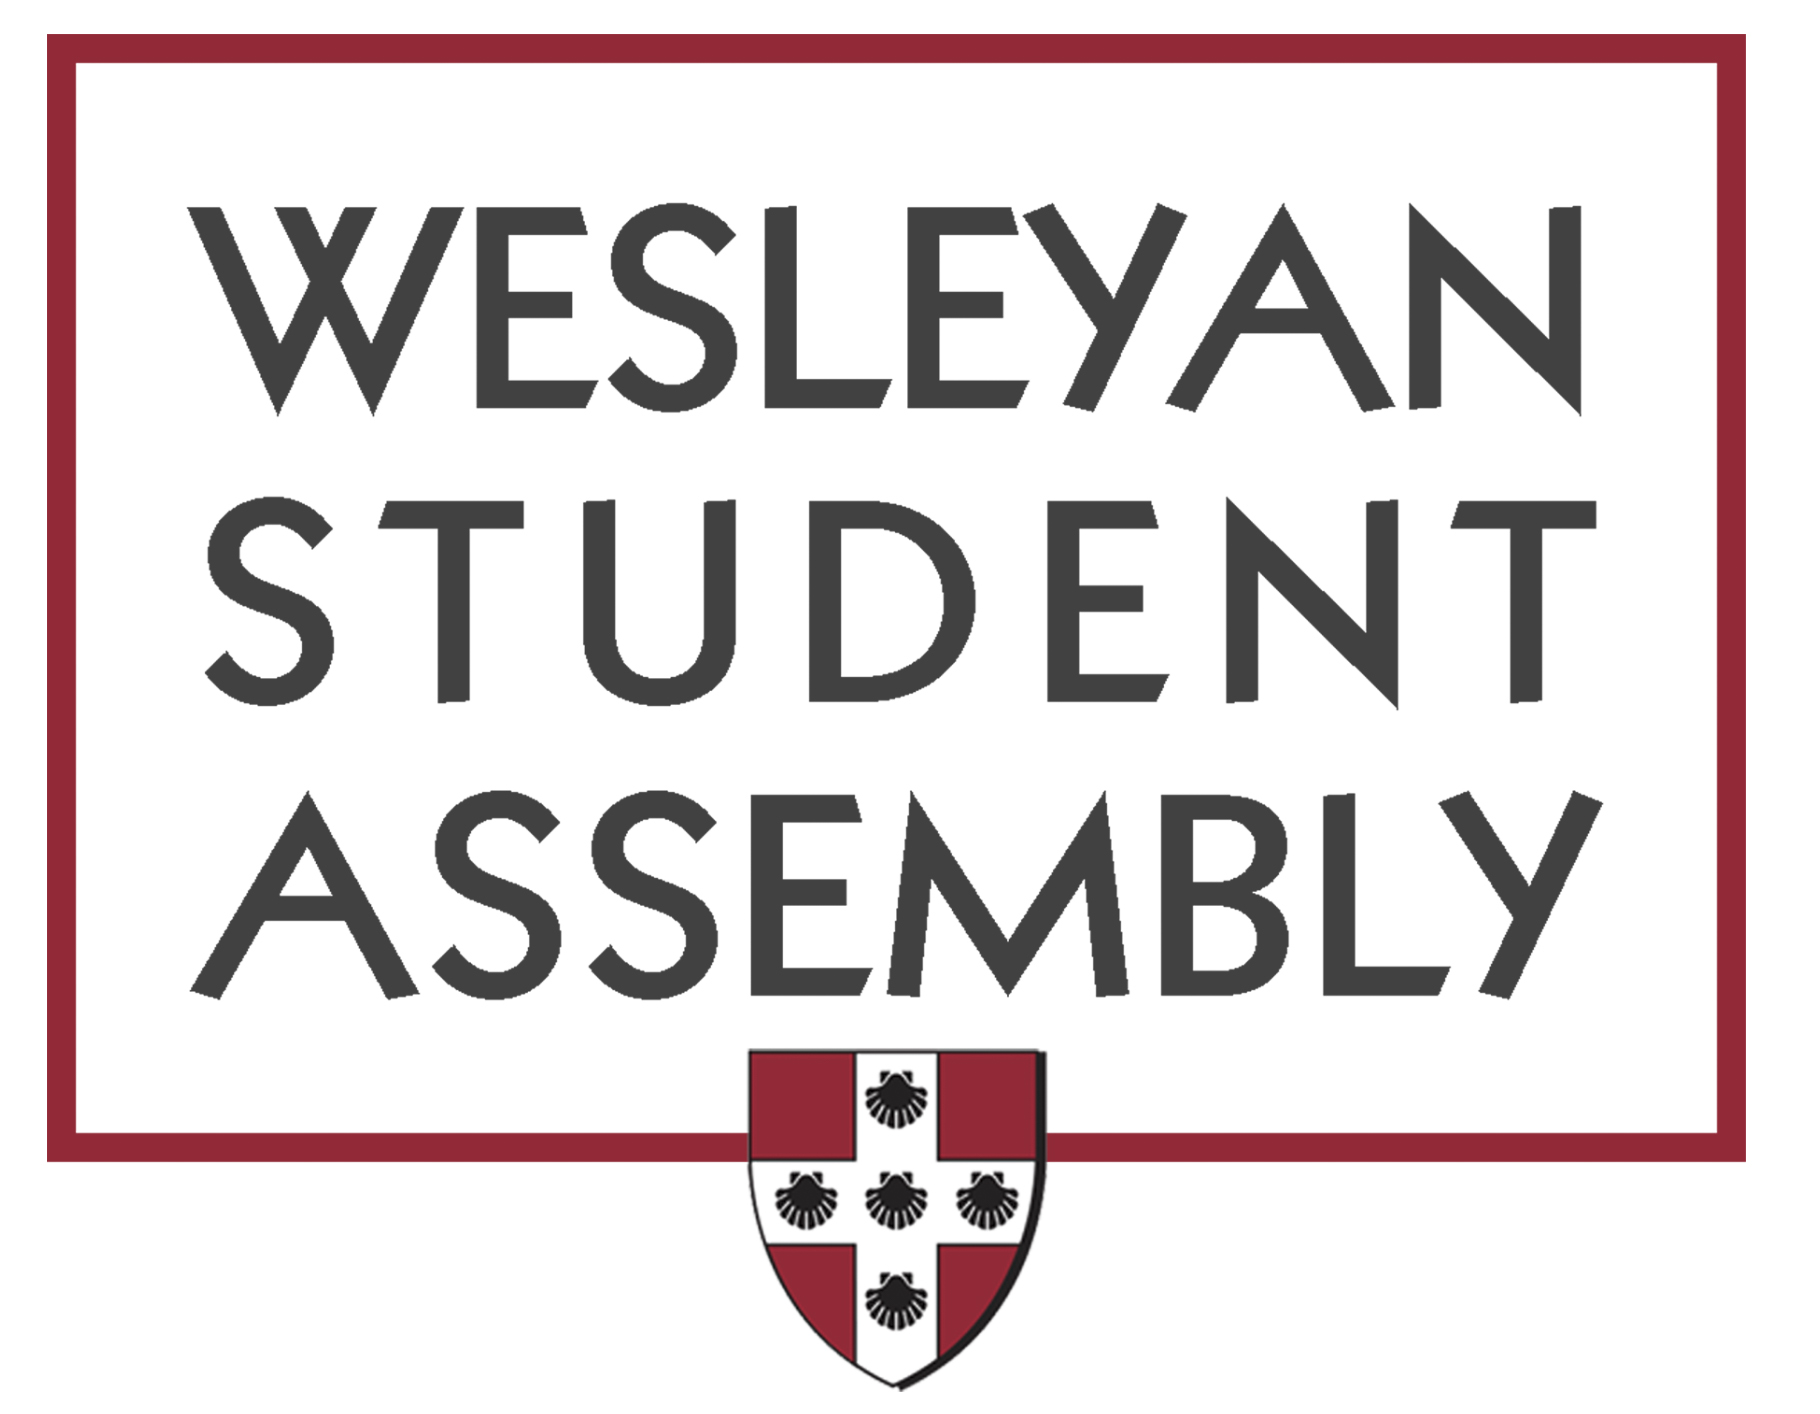 c/o Wesleyan Student Assembly